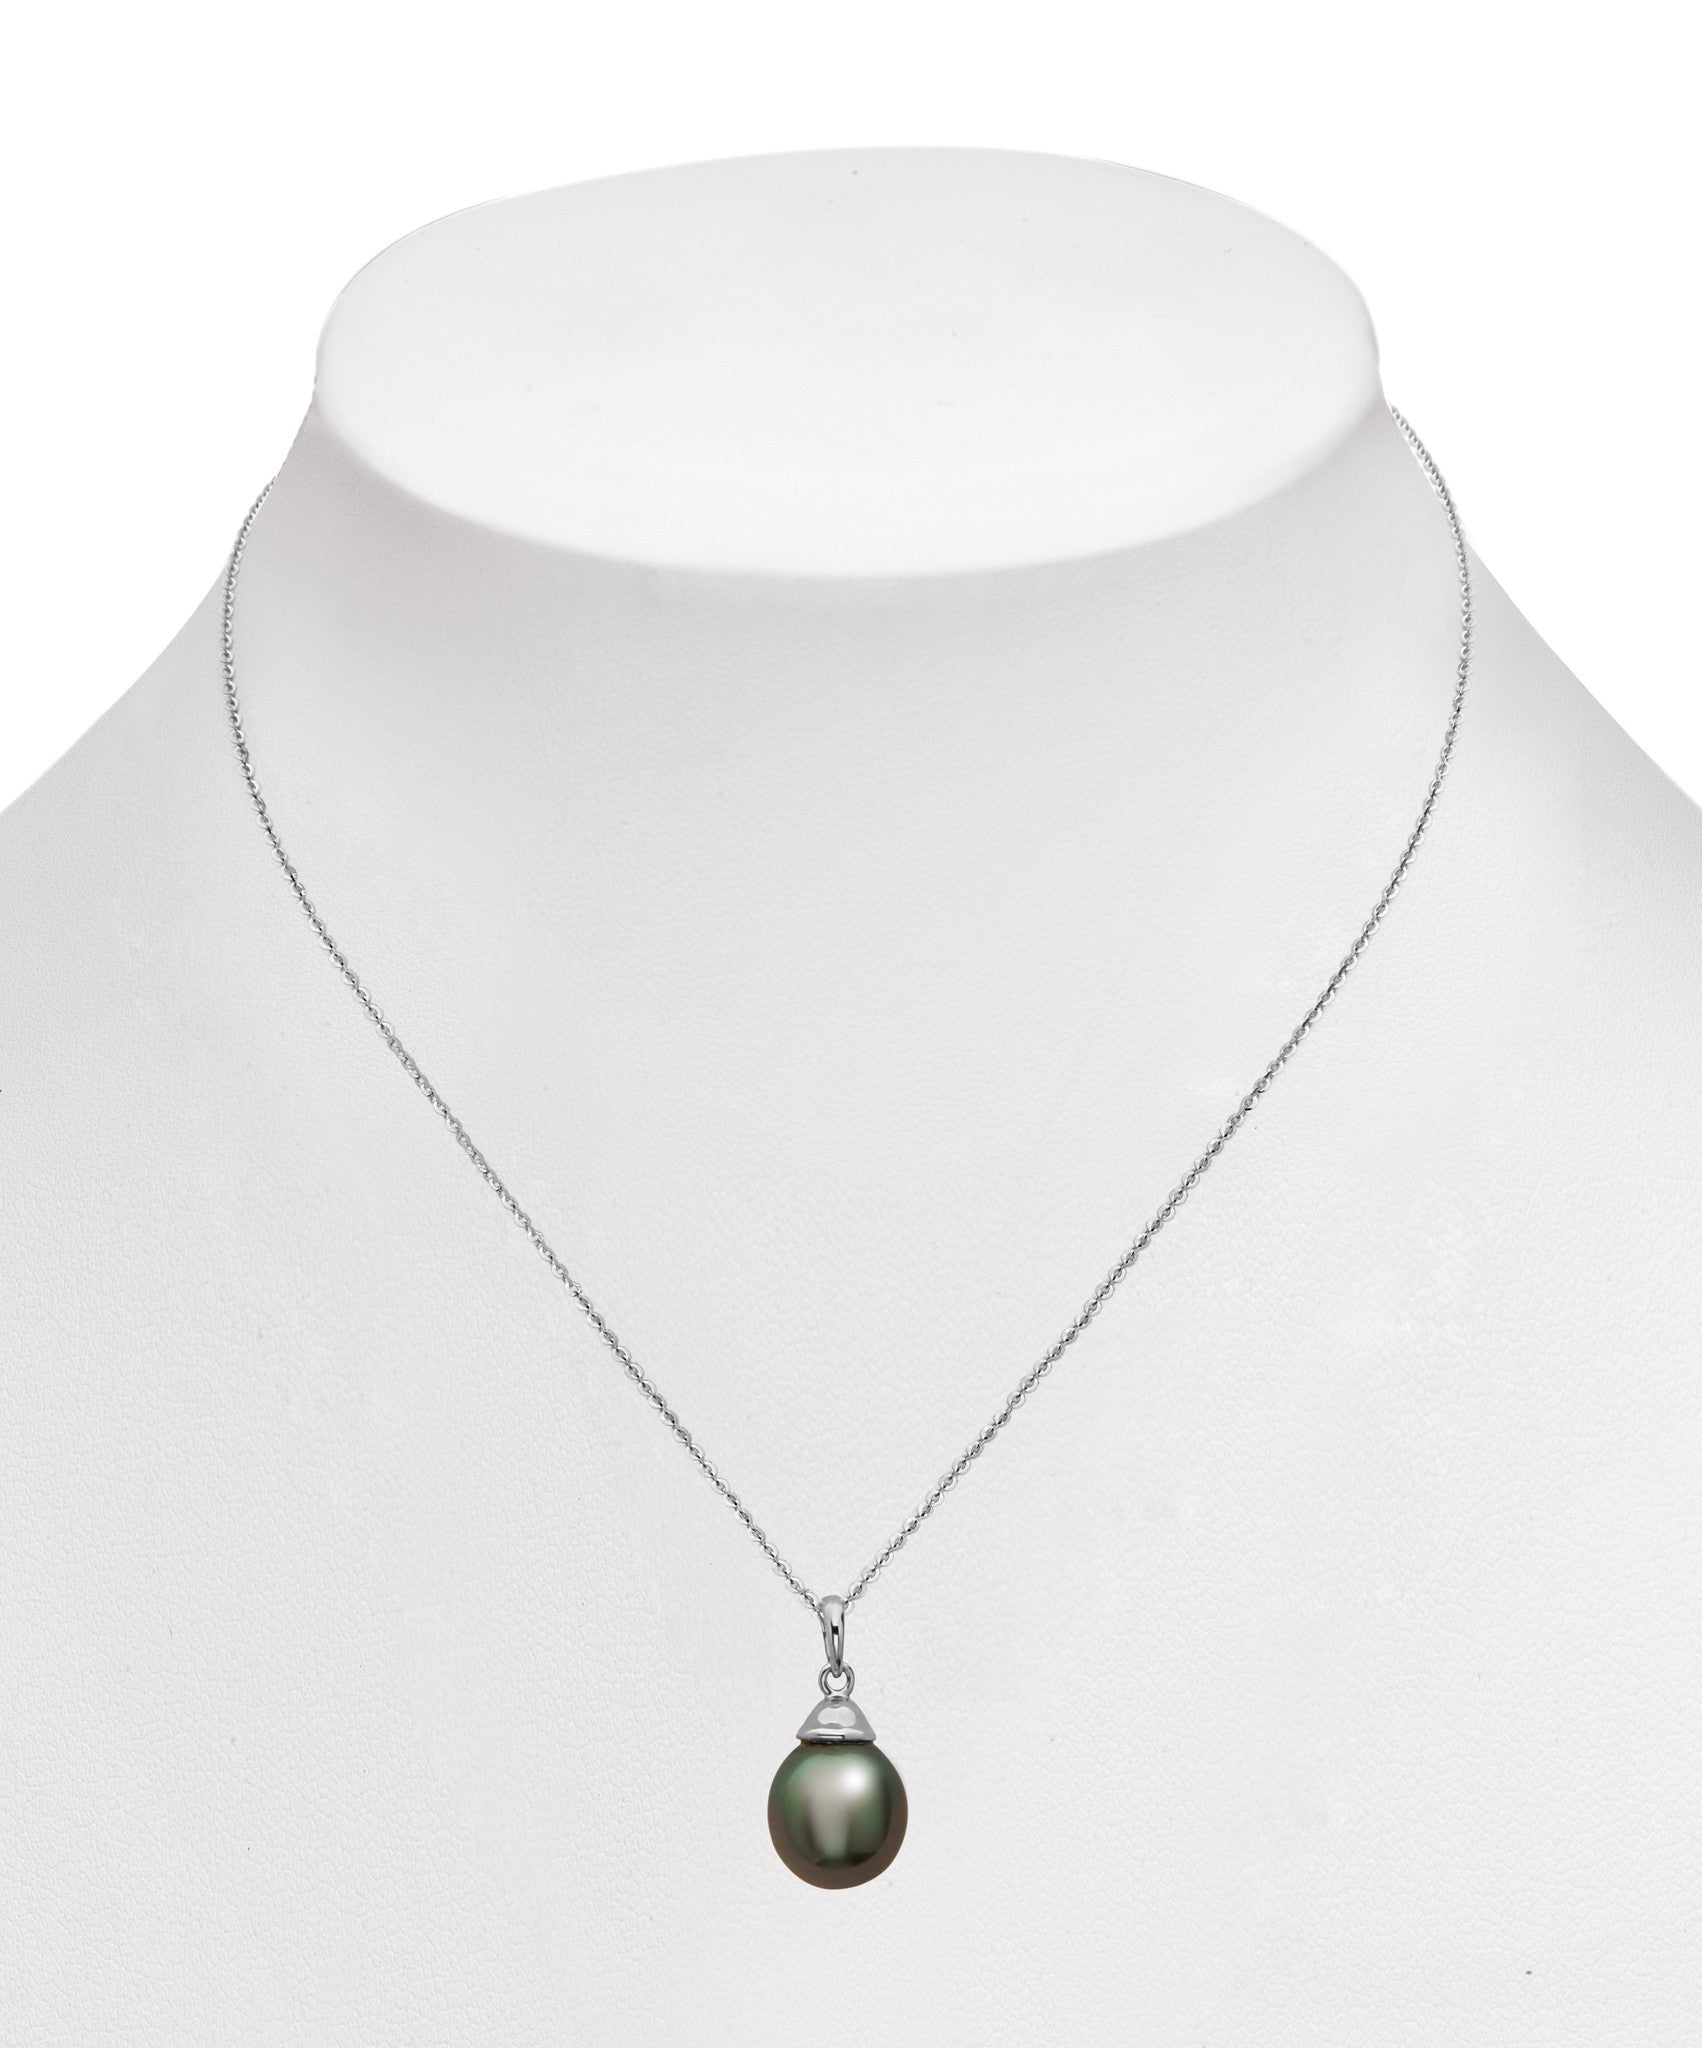 8-9mm Tahitian Pearl Pendant Necklace